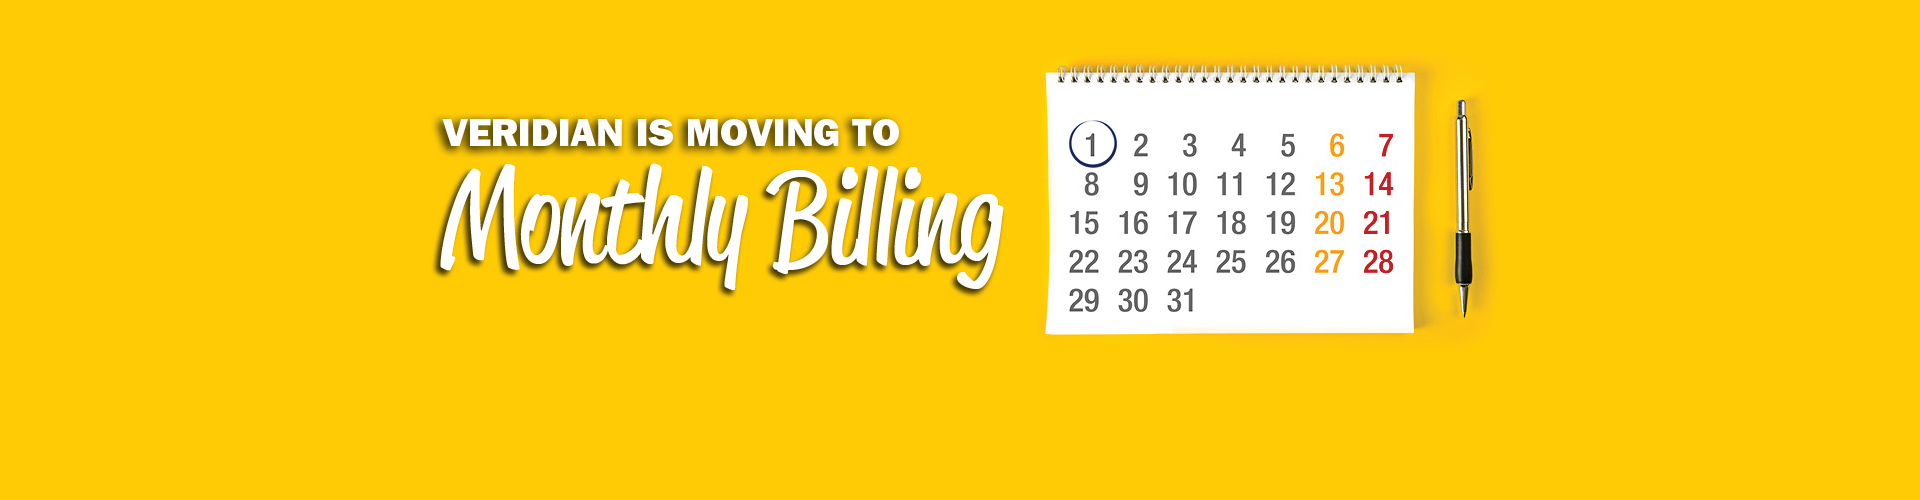 Veridian_Monthly_Billing_Landing_Page_Banner_08-26